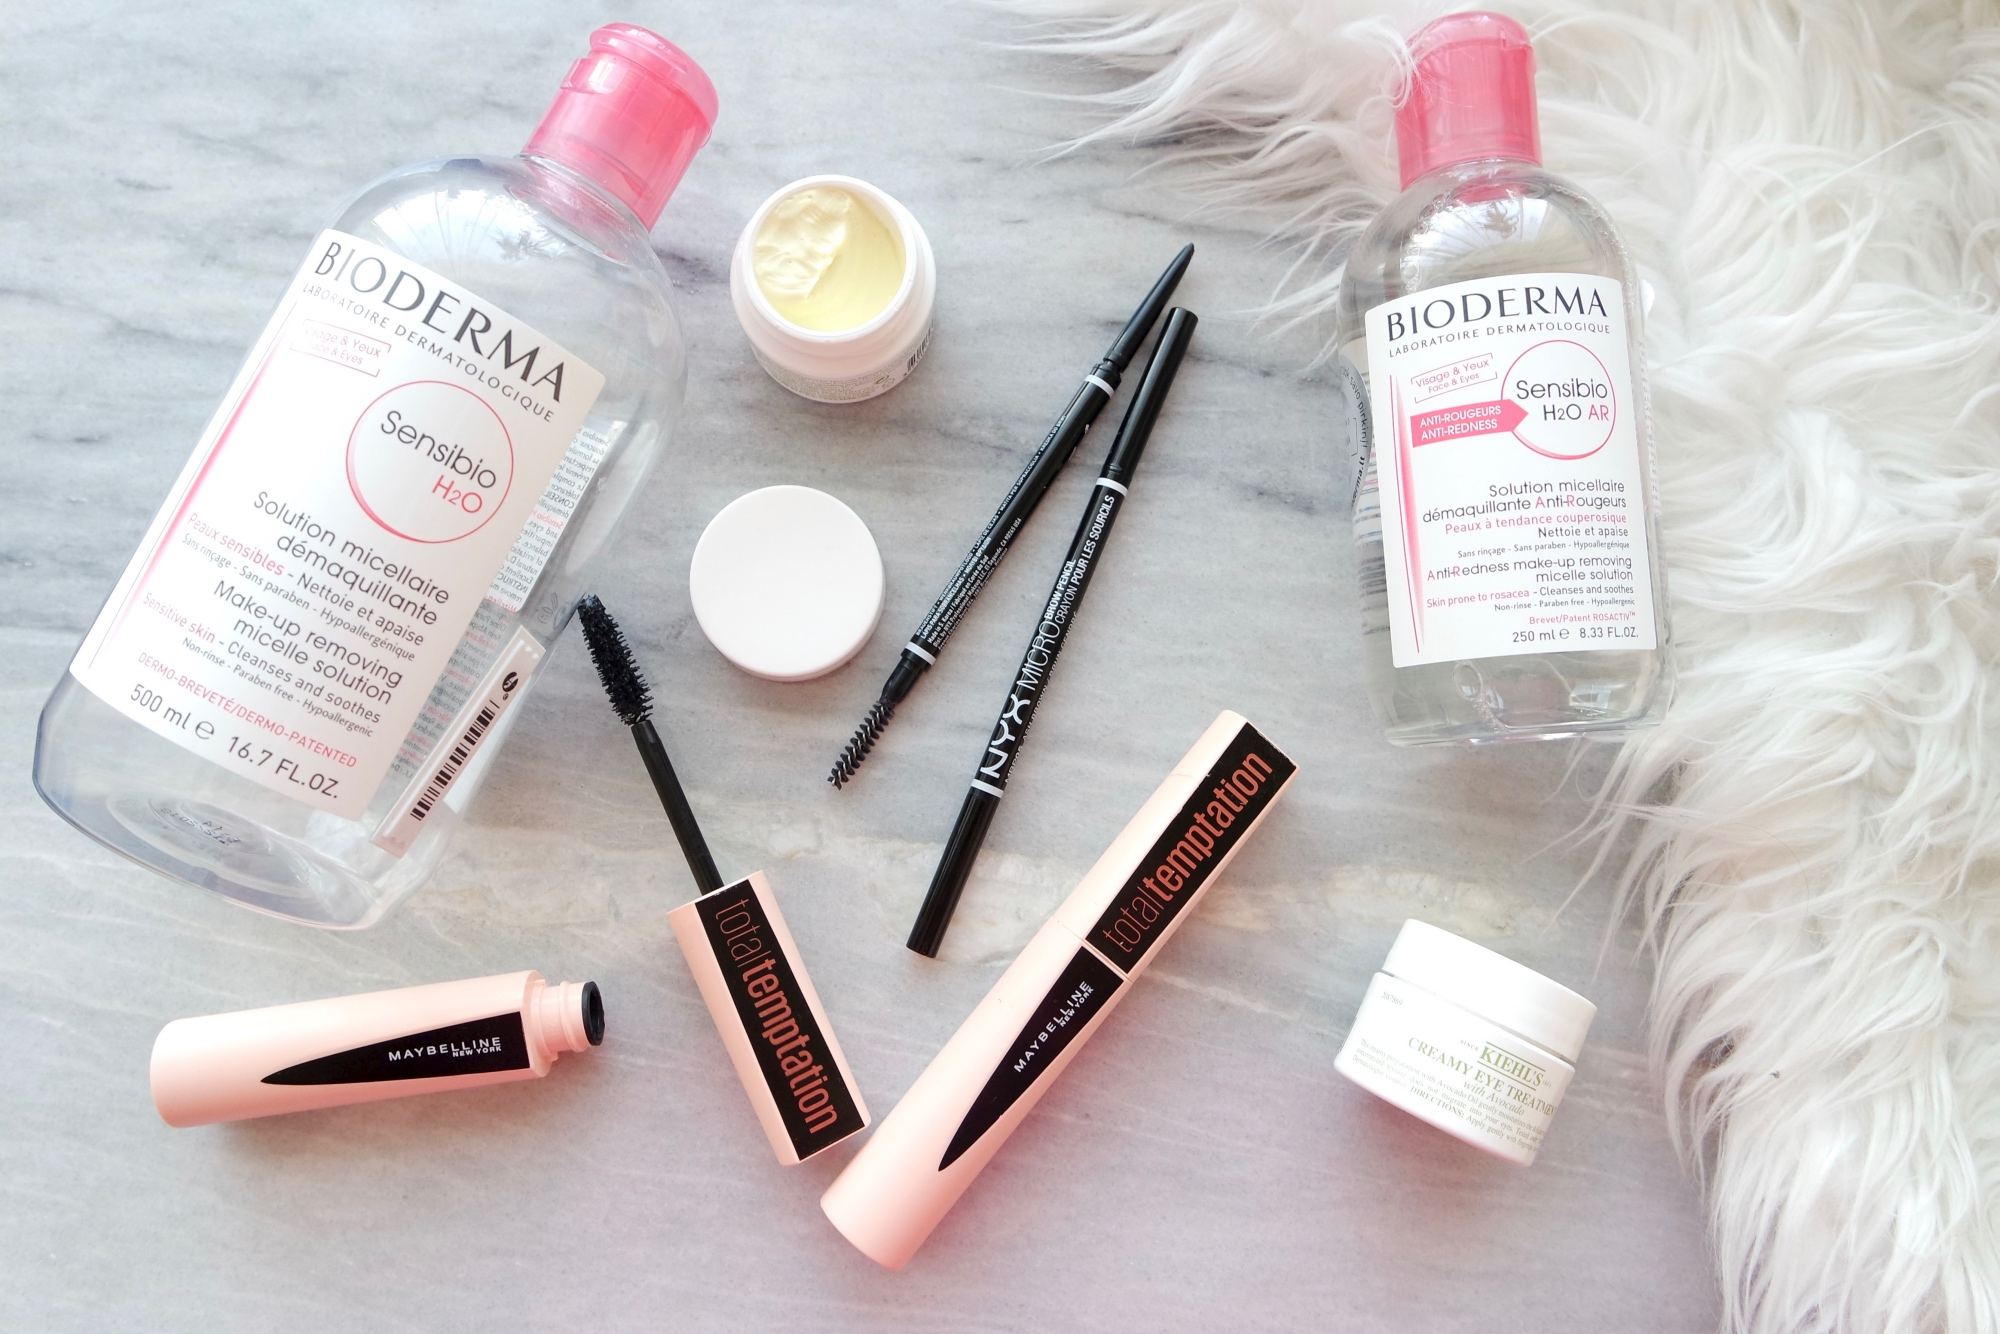 Products I keep repurchasing